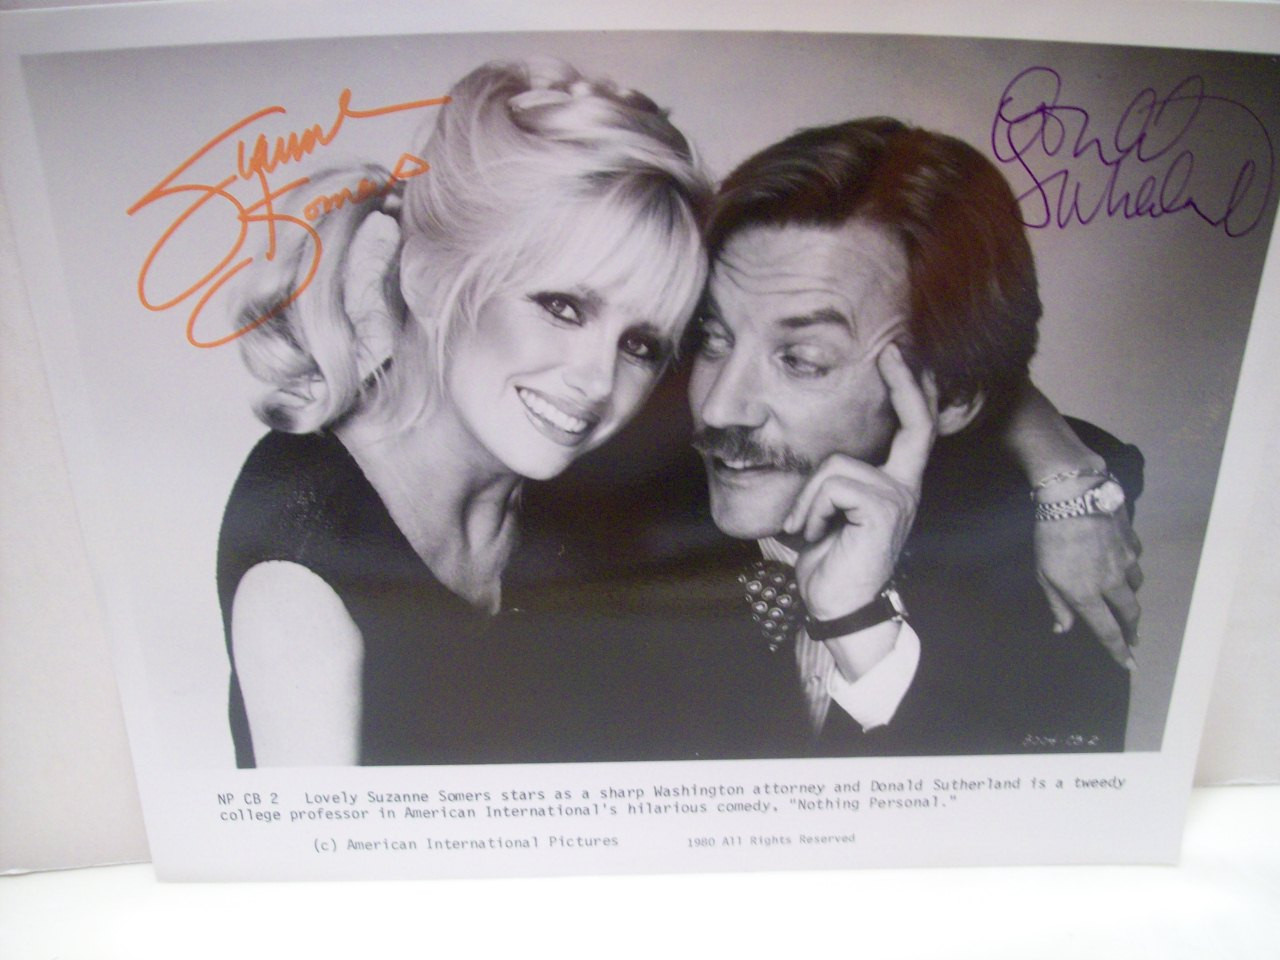 Sutherland, Donald Suzanne Somers Signed Autograph Nothing Personal 1980